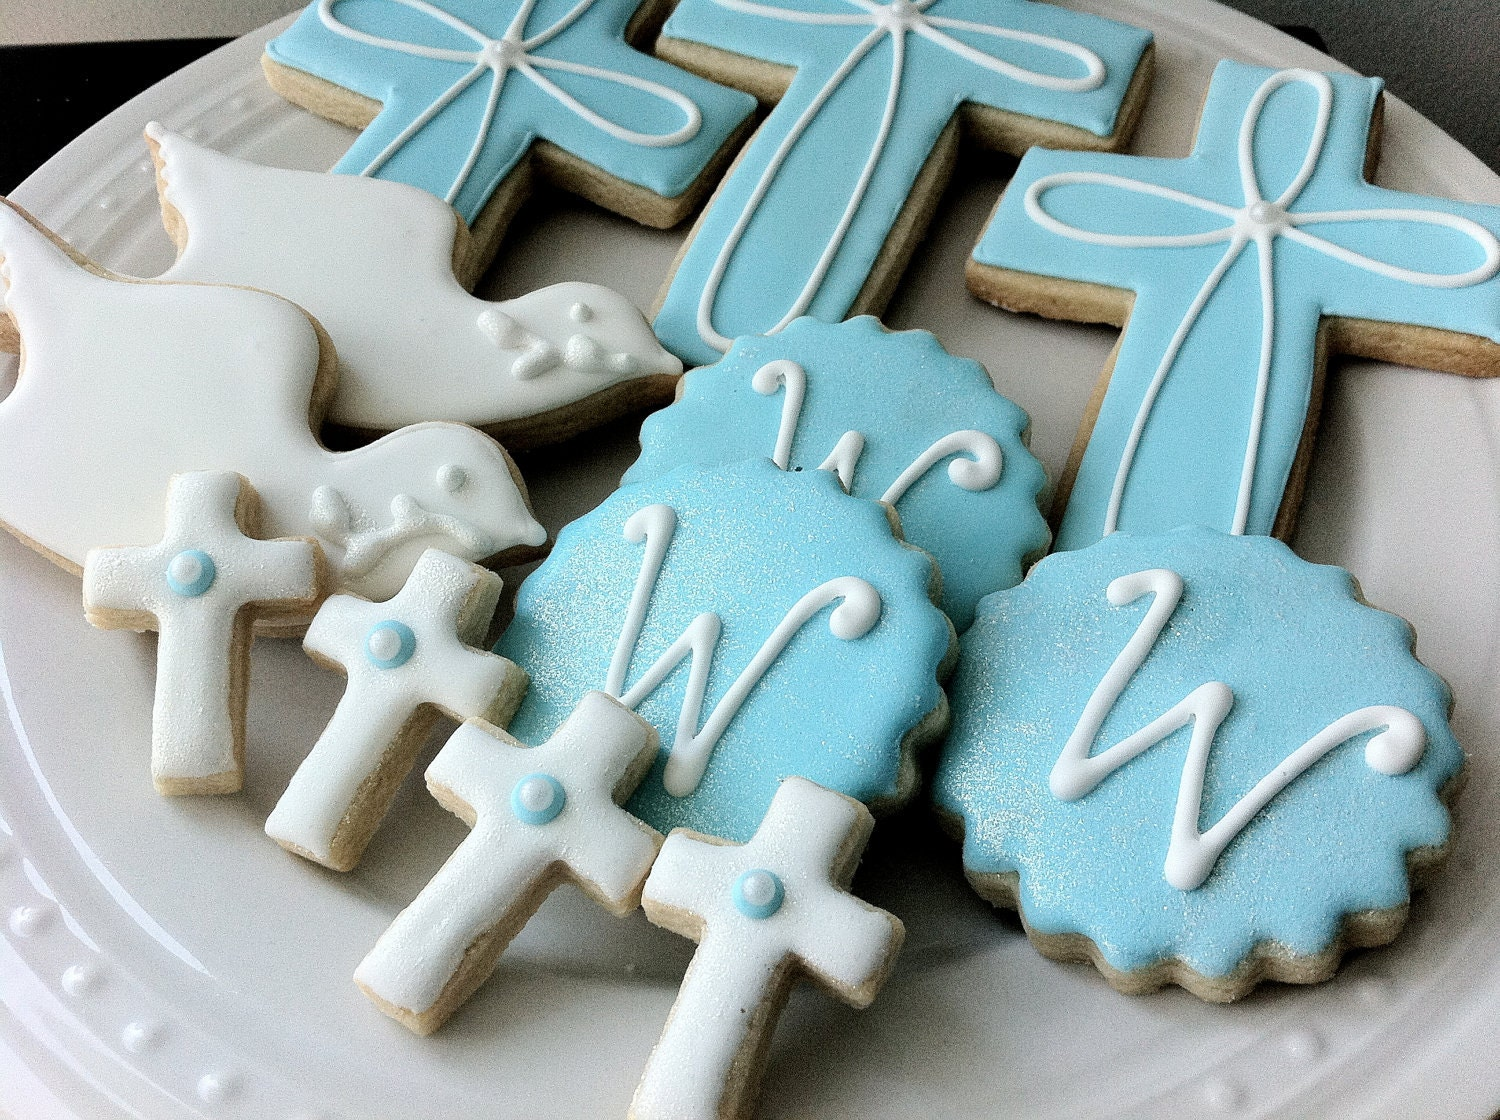 Outstanding Baptism Party Favors Cookies 1500 x 1120 · 522 kB · jpeg